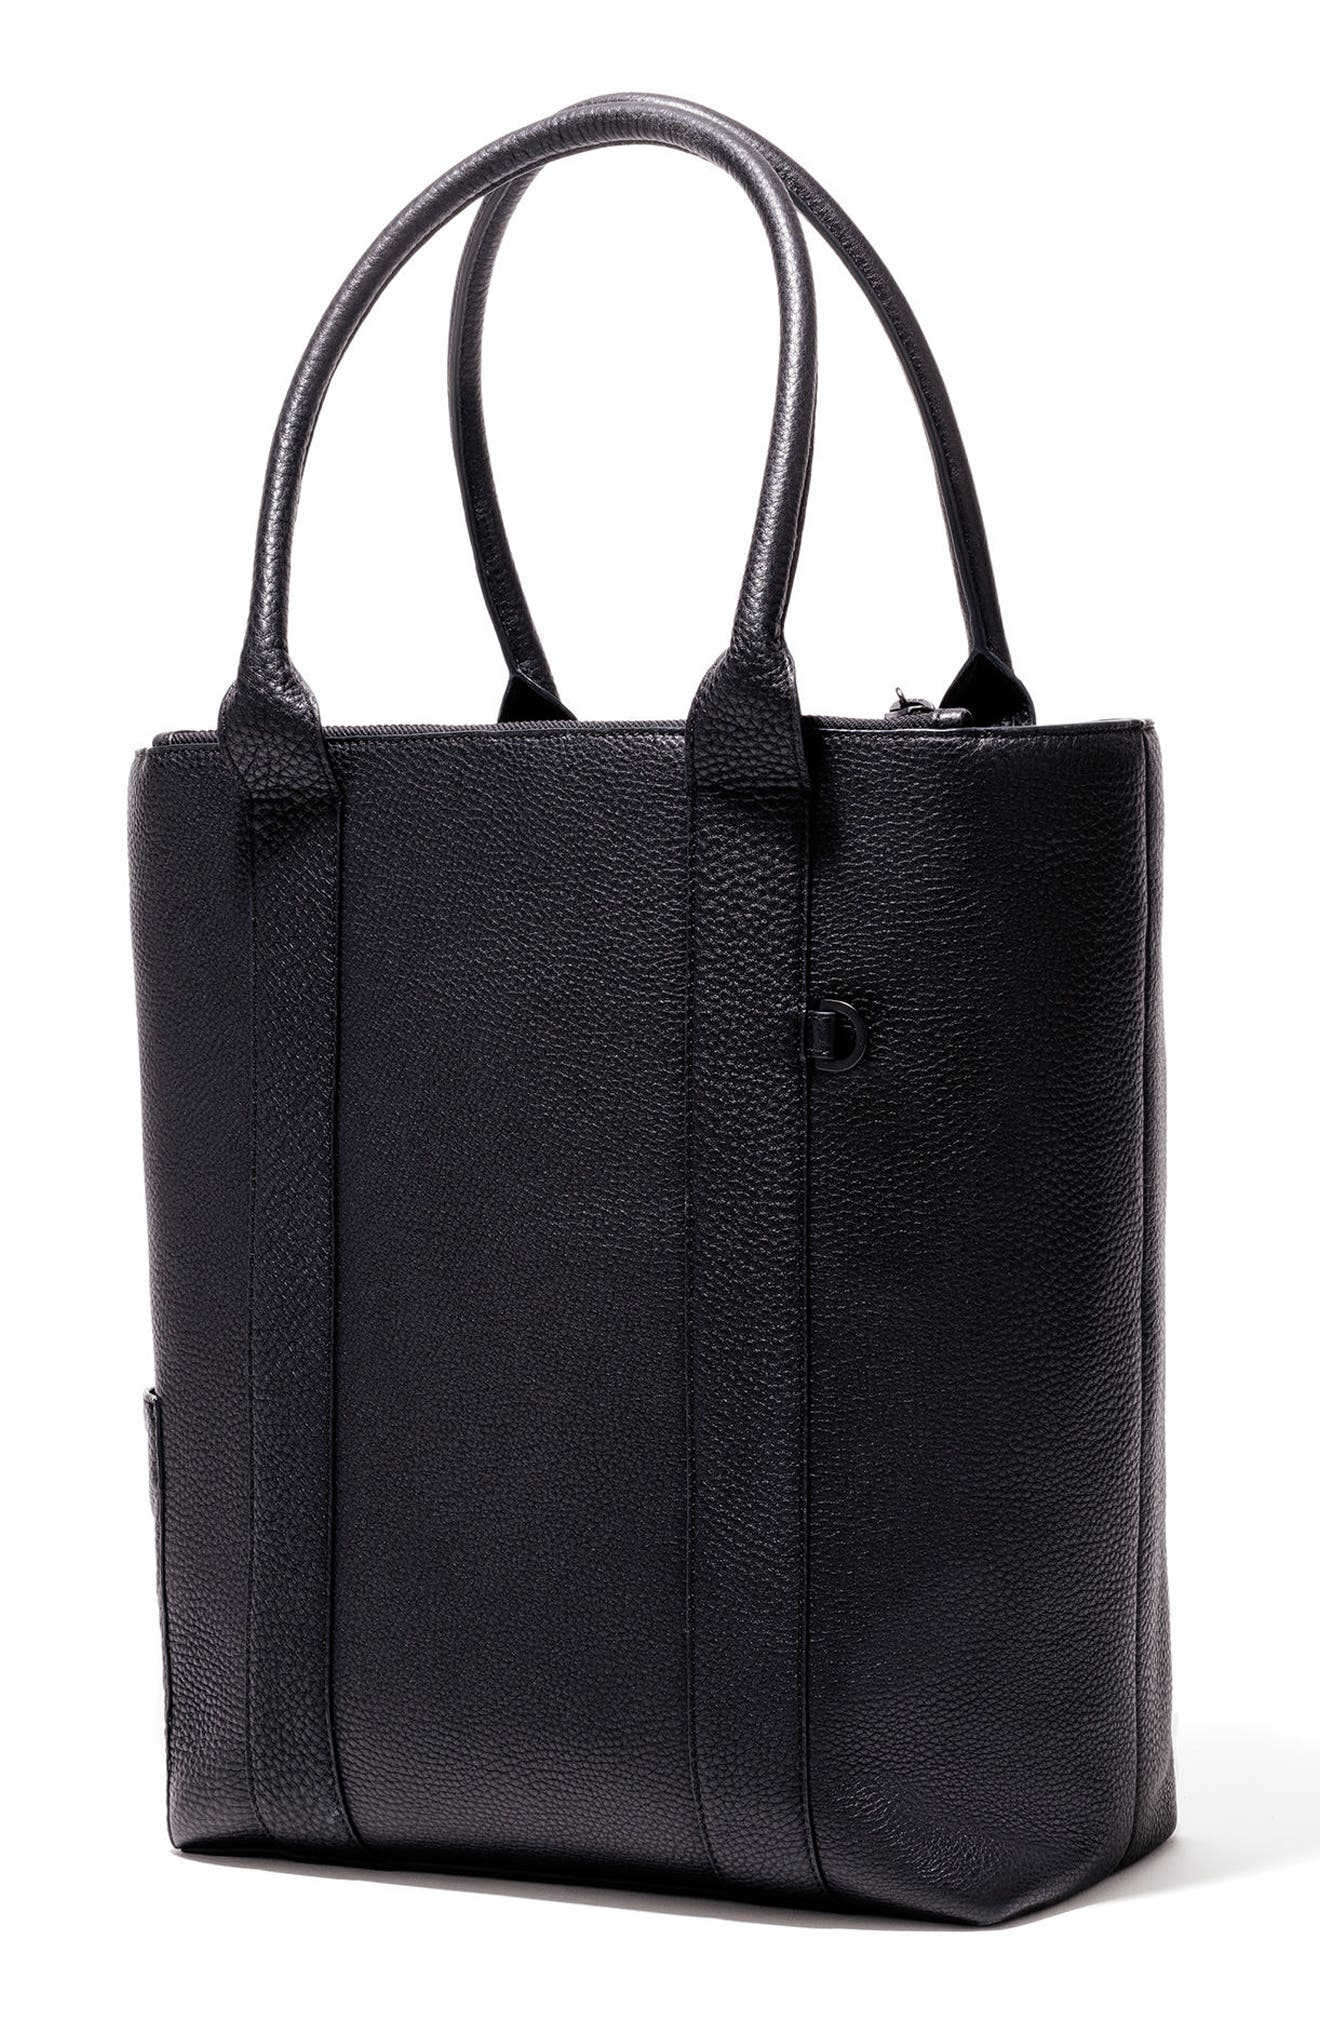 Charlie Leather Tote,                             Alternate thumbnail 3, color,                             ONYX